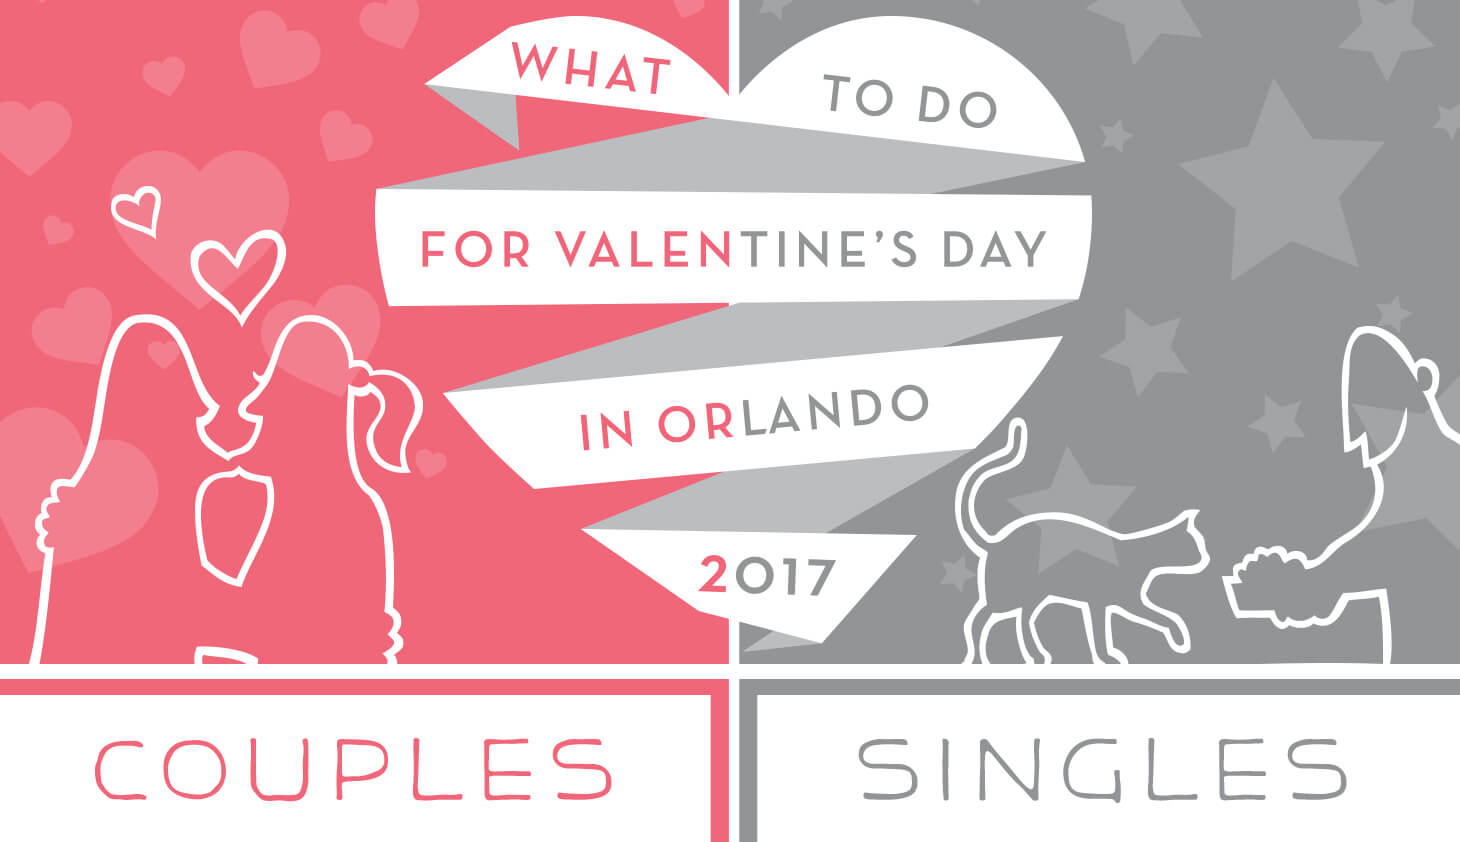 Things to Do in Orlando for Valentine's Day 2017